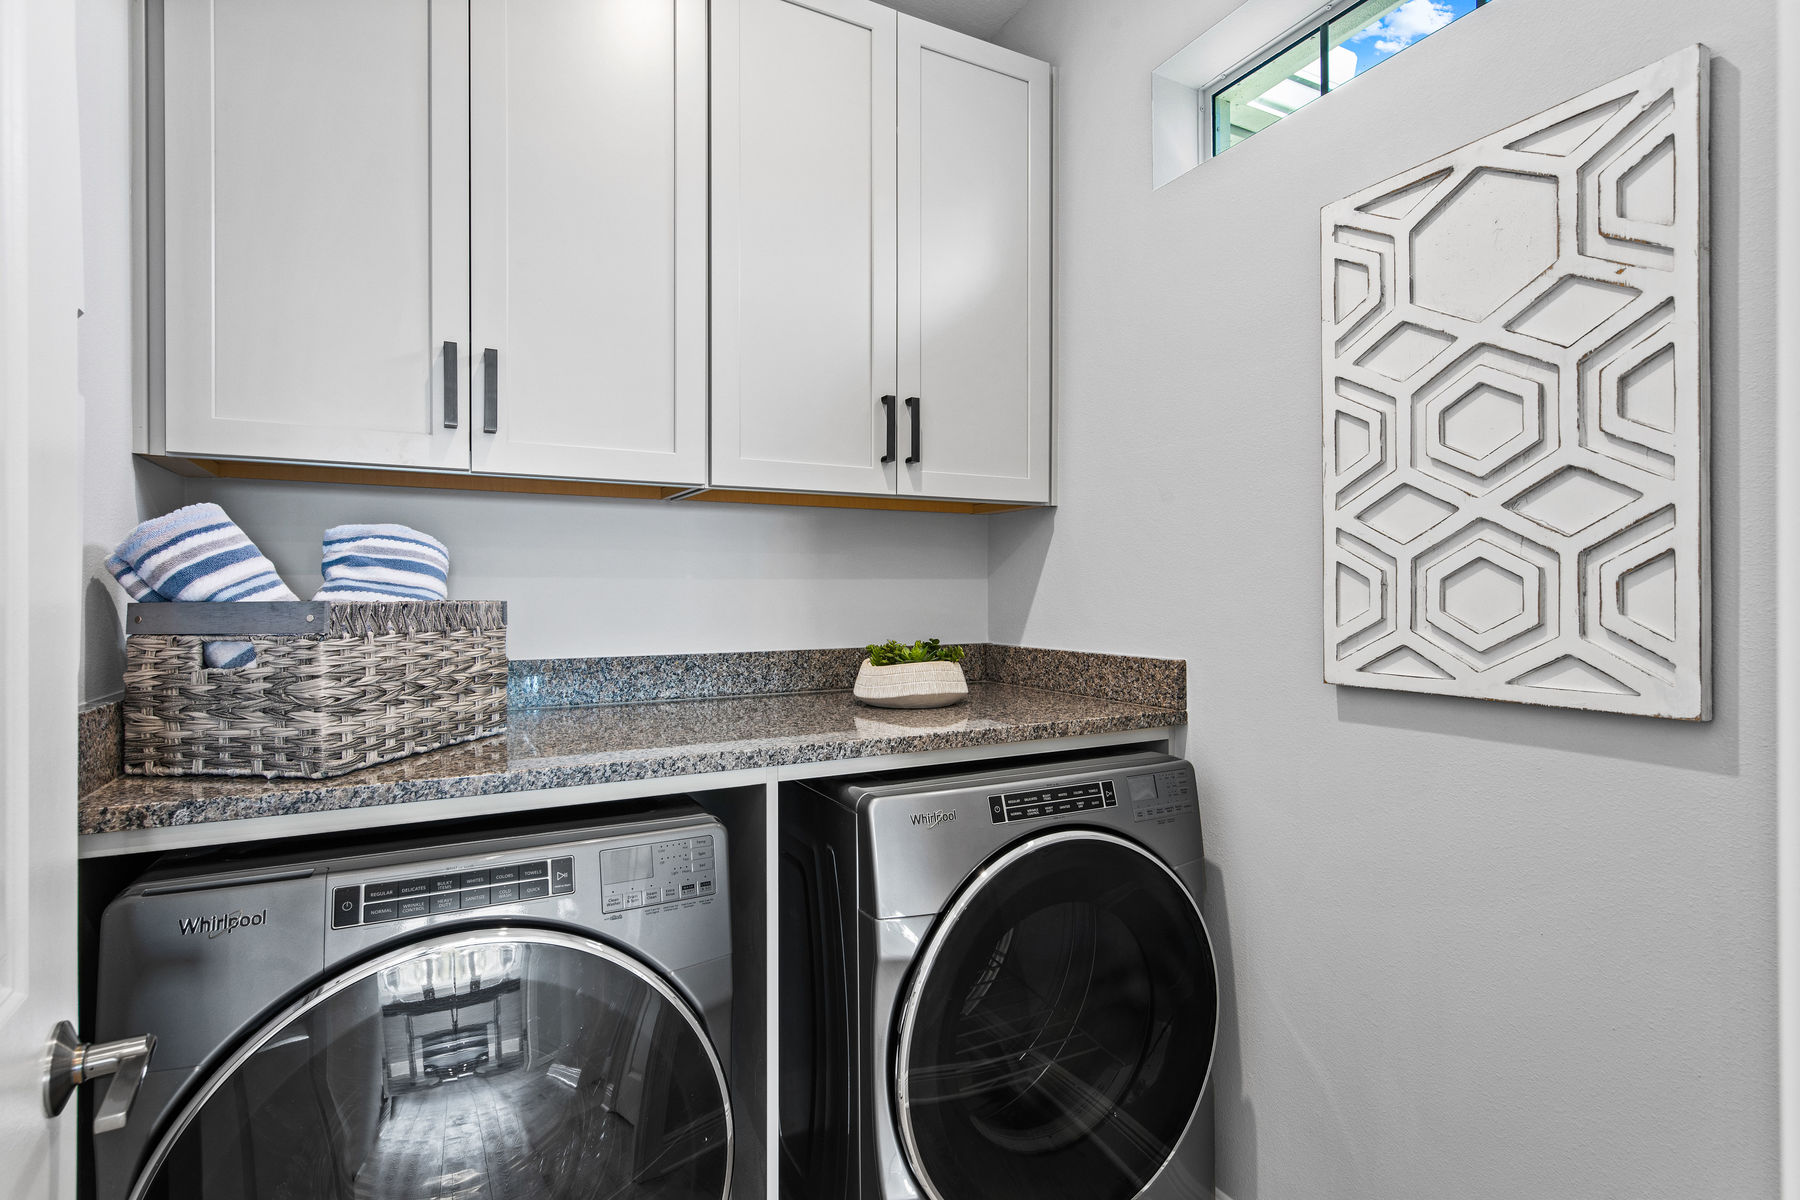 Oceangrove Plan Laundry at Arboretum in Naples Florida by Mattamy Homes